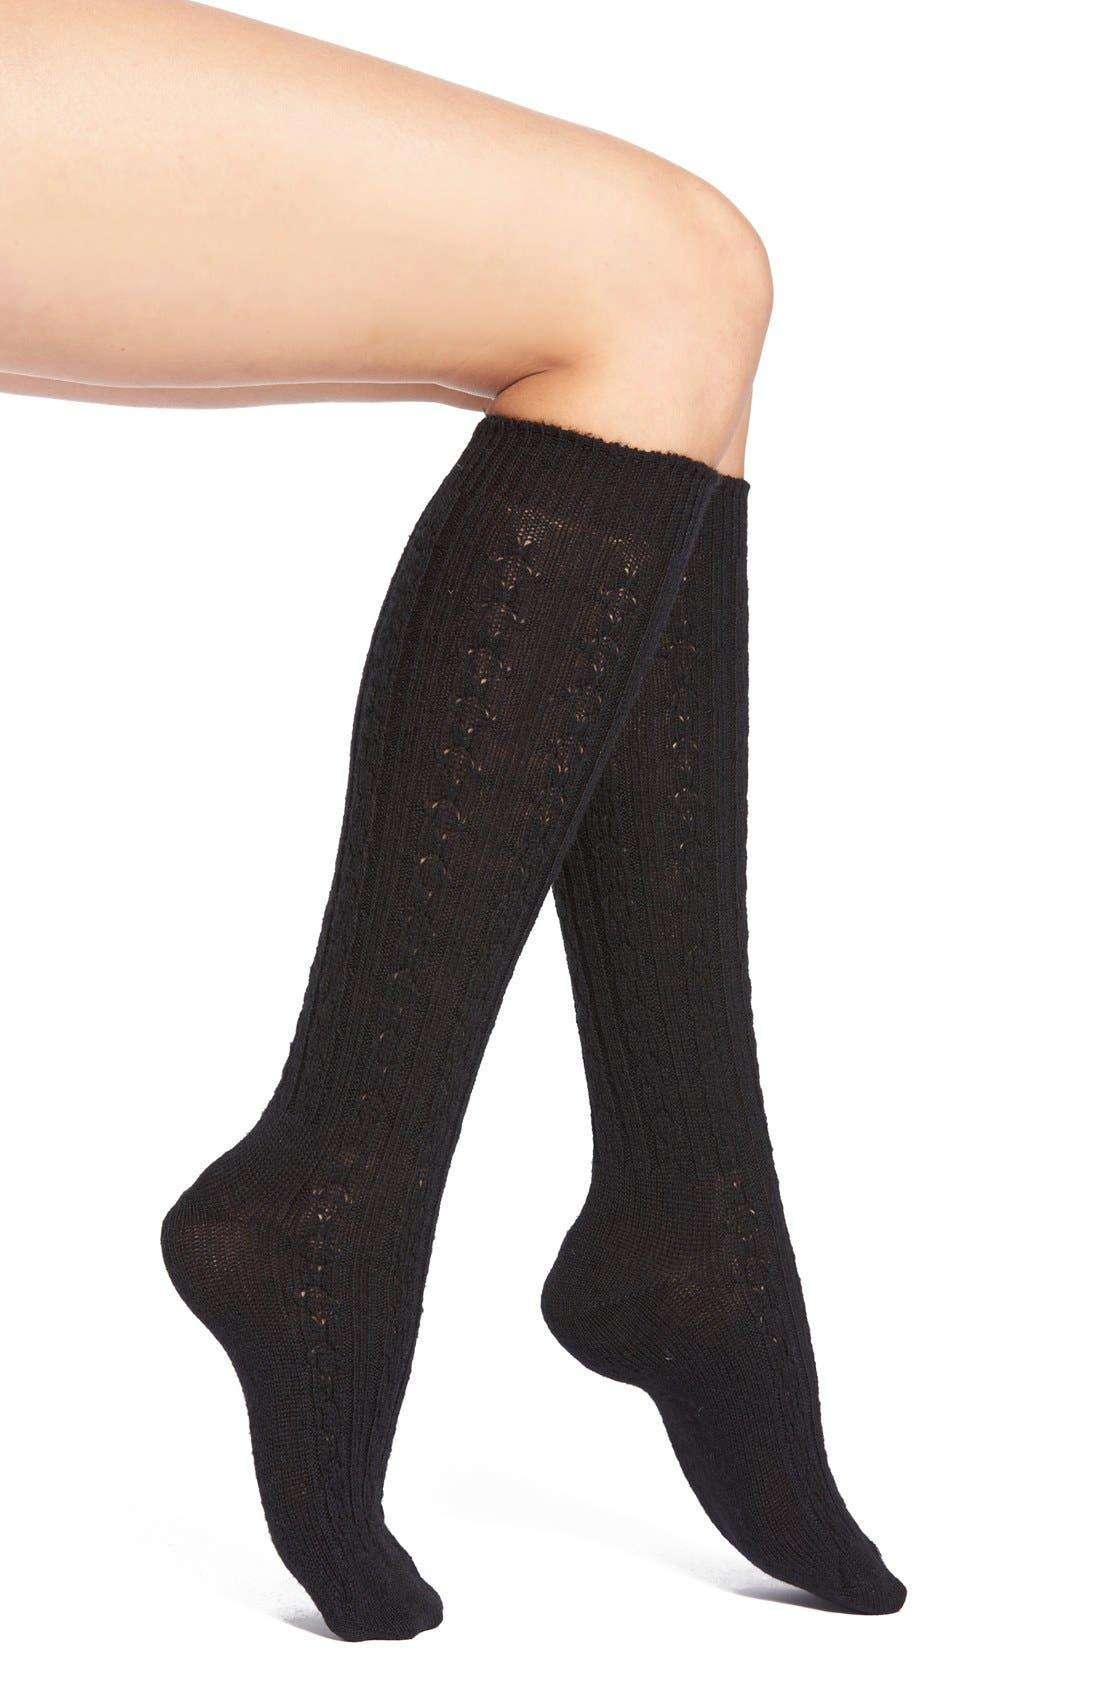 Cable Knit Knee Socks,                         Main,                         color, Black